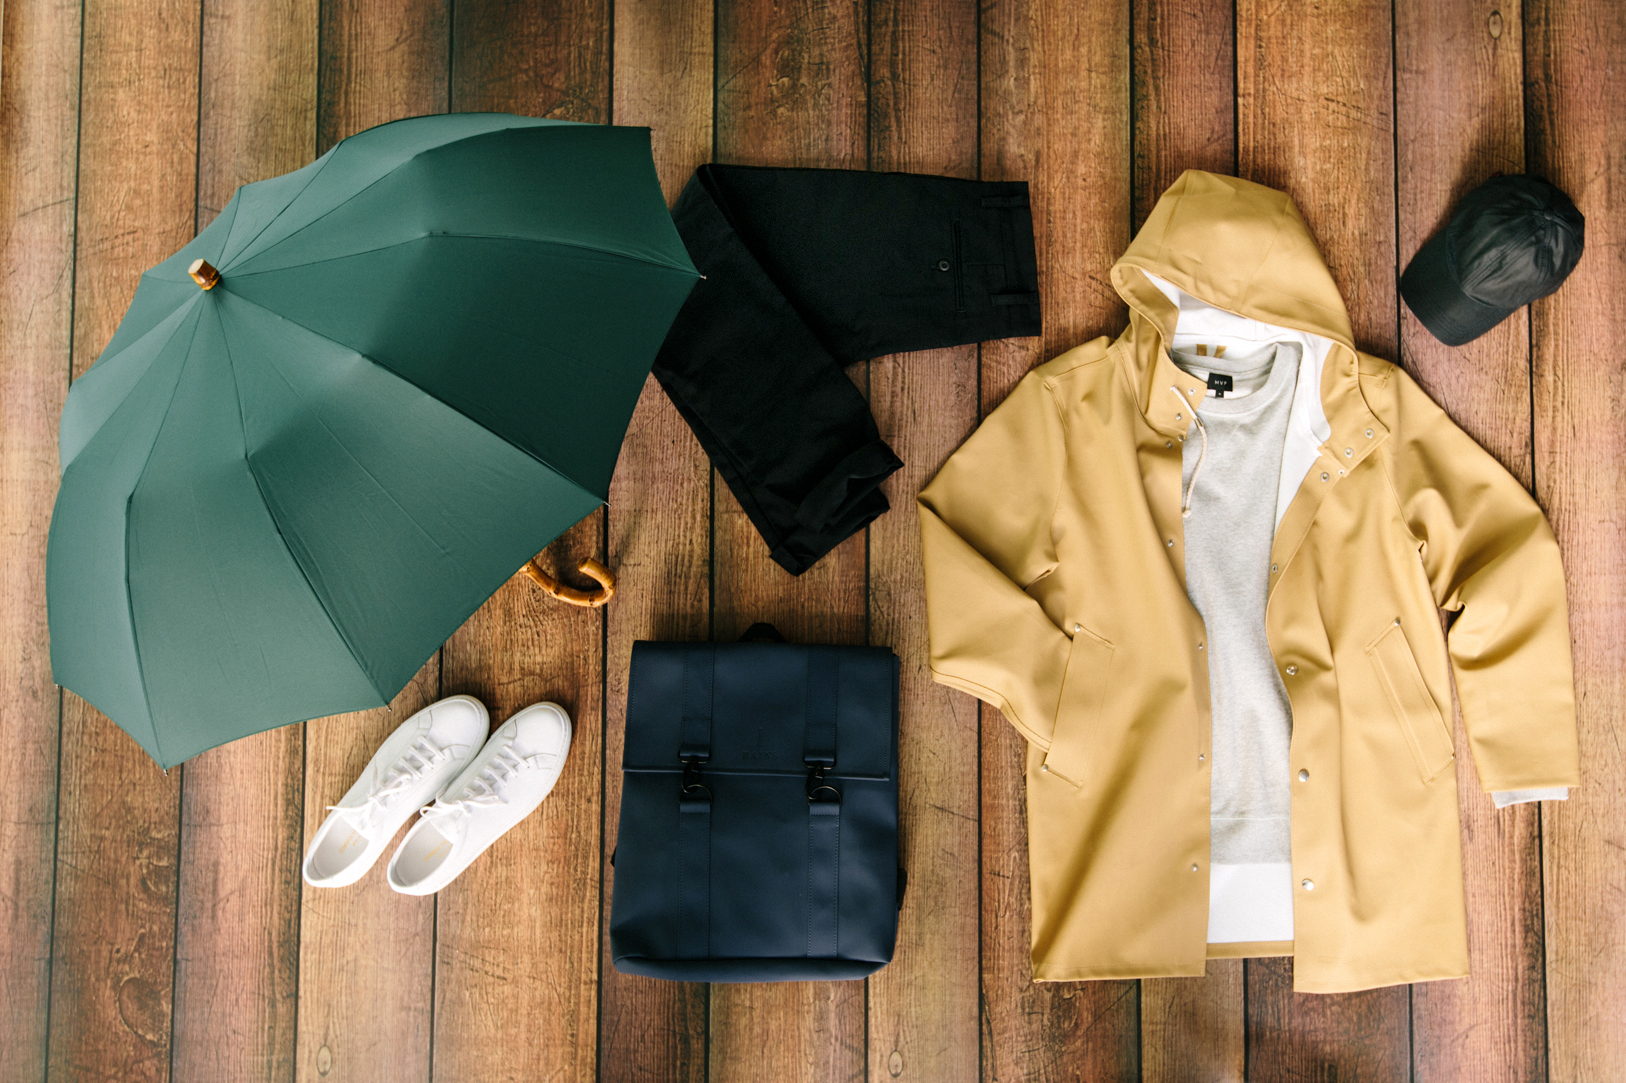 How to dress for rain